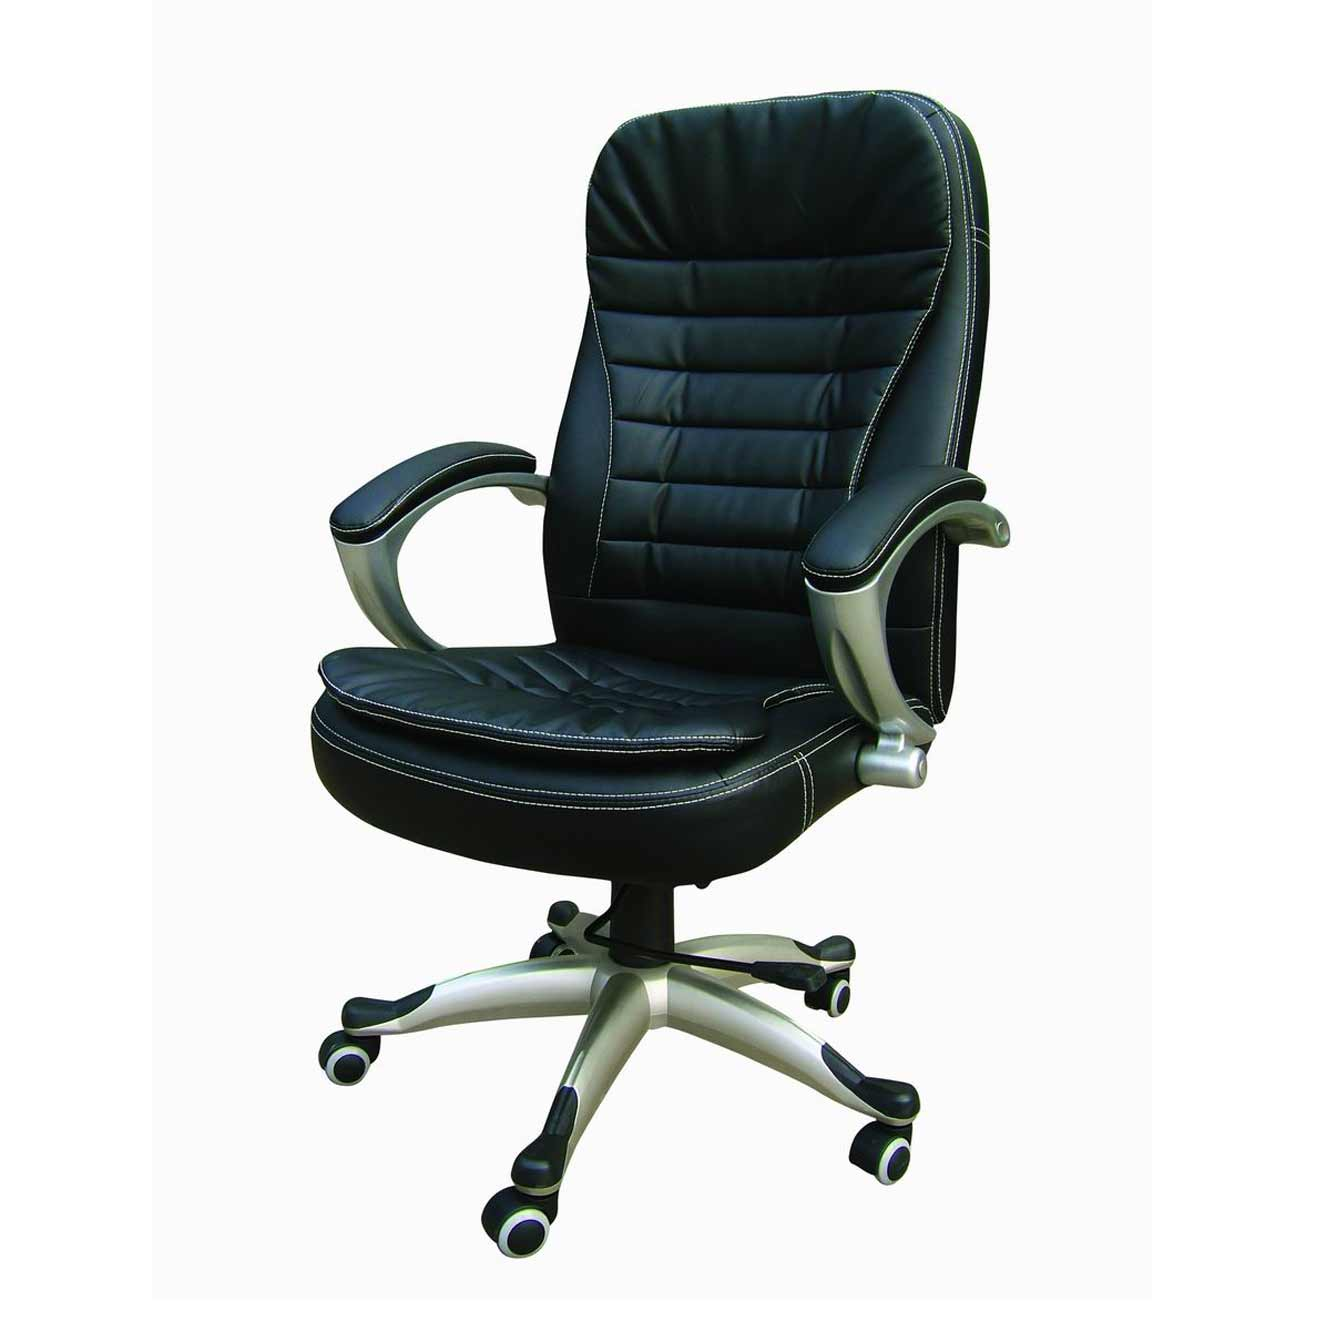 lumbar support office chair displaying 18 images for lumbar support